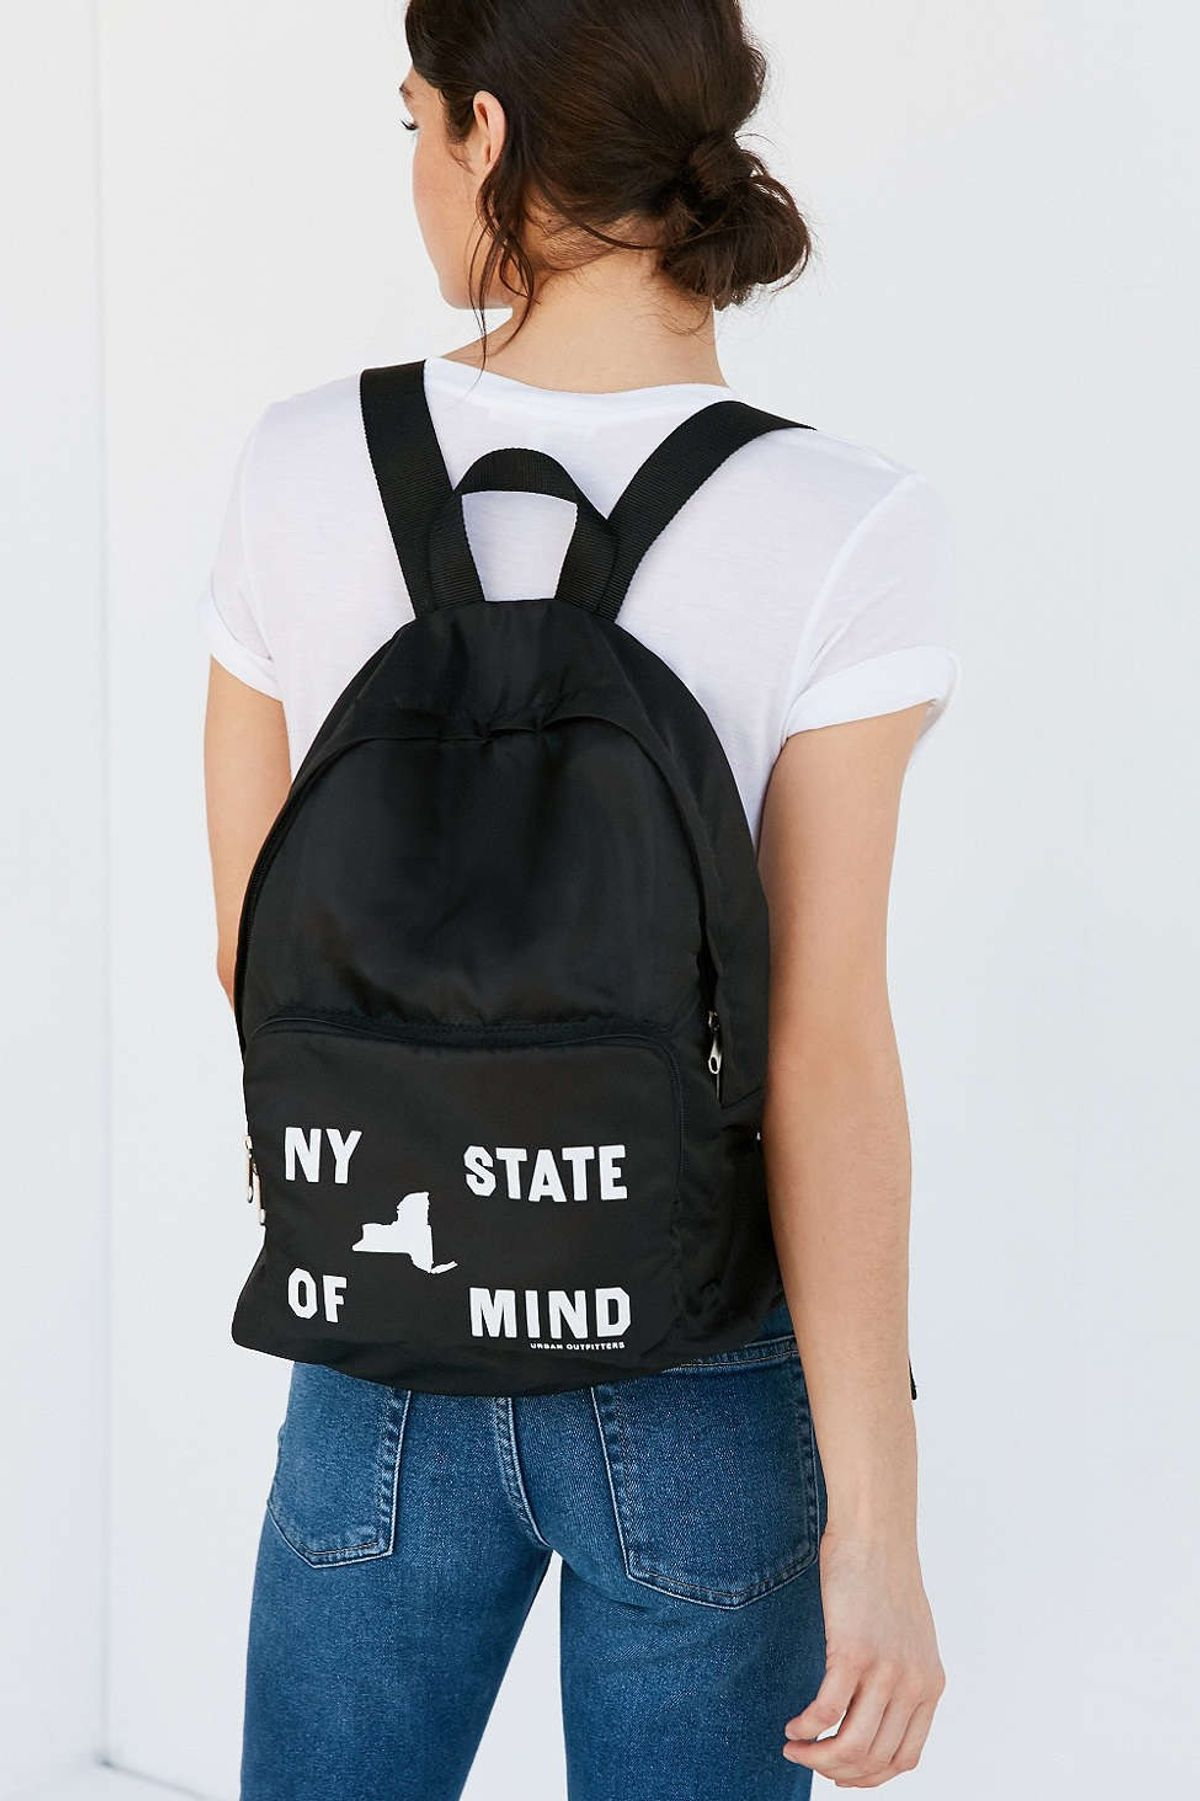 10 Backpacks For The Fashionista